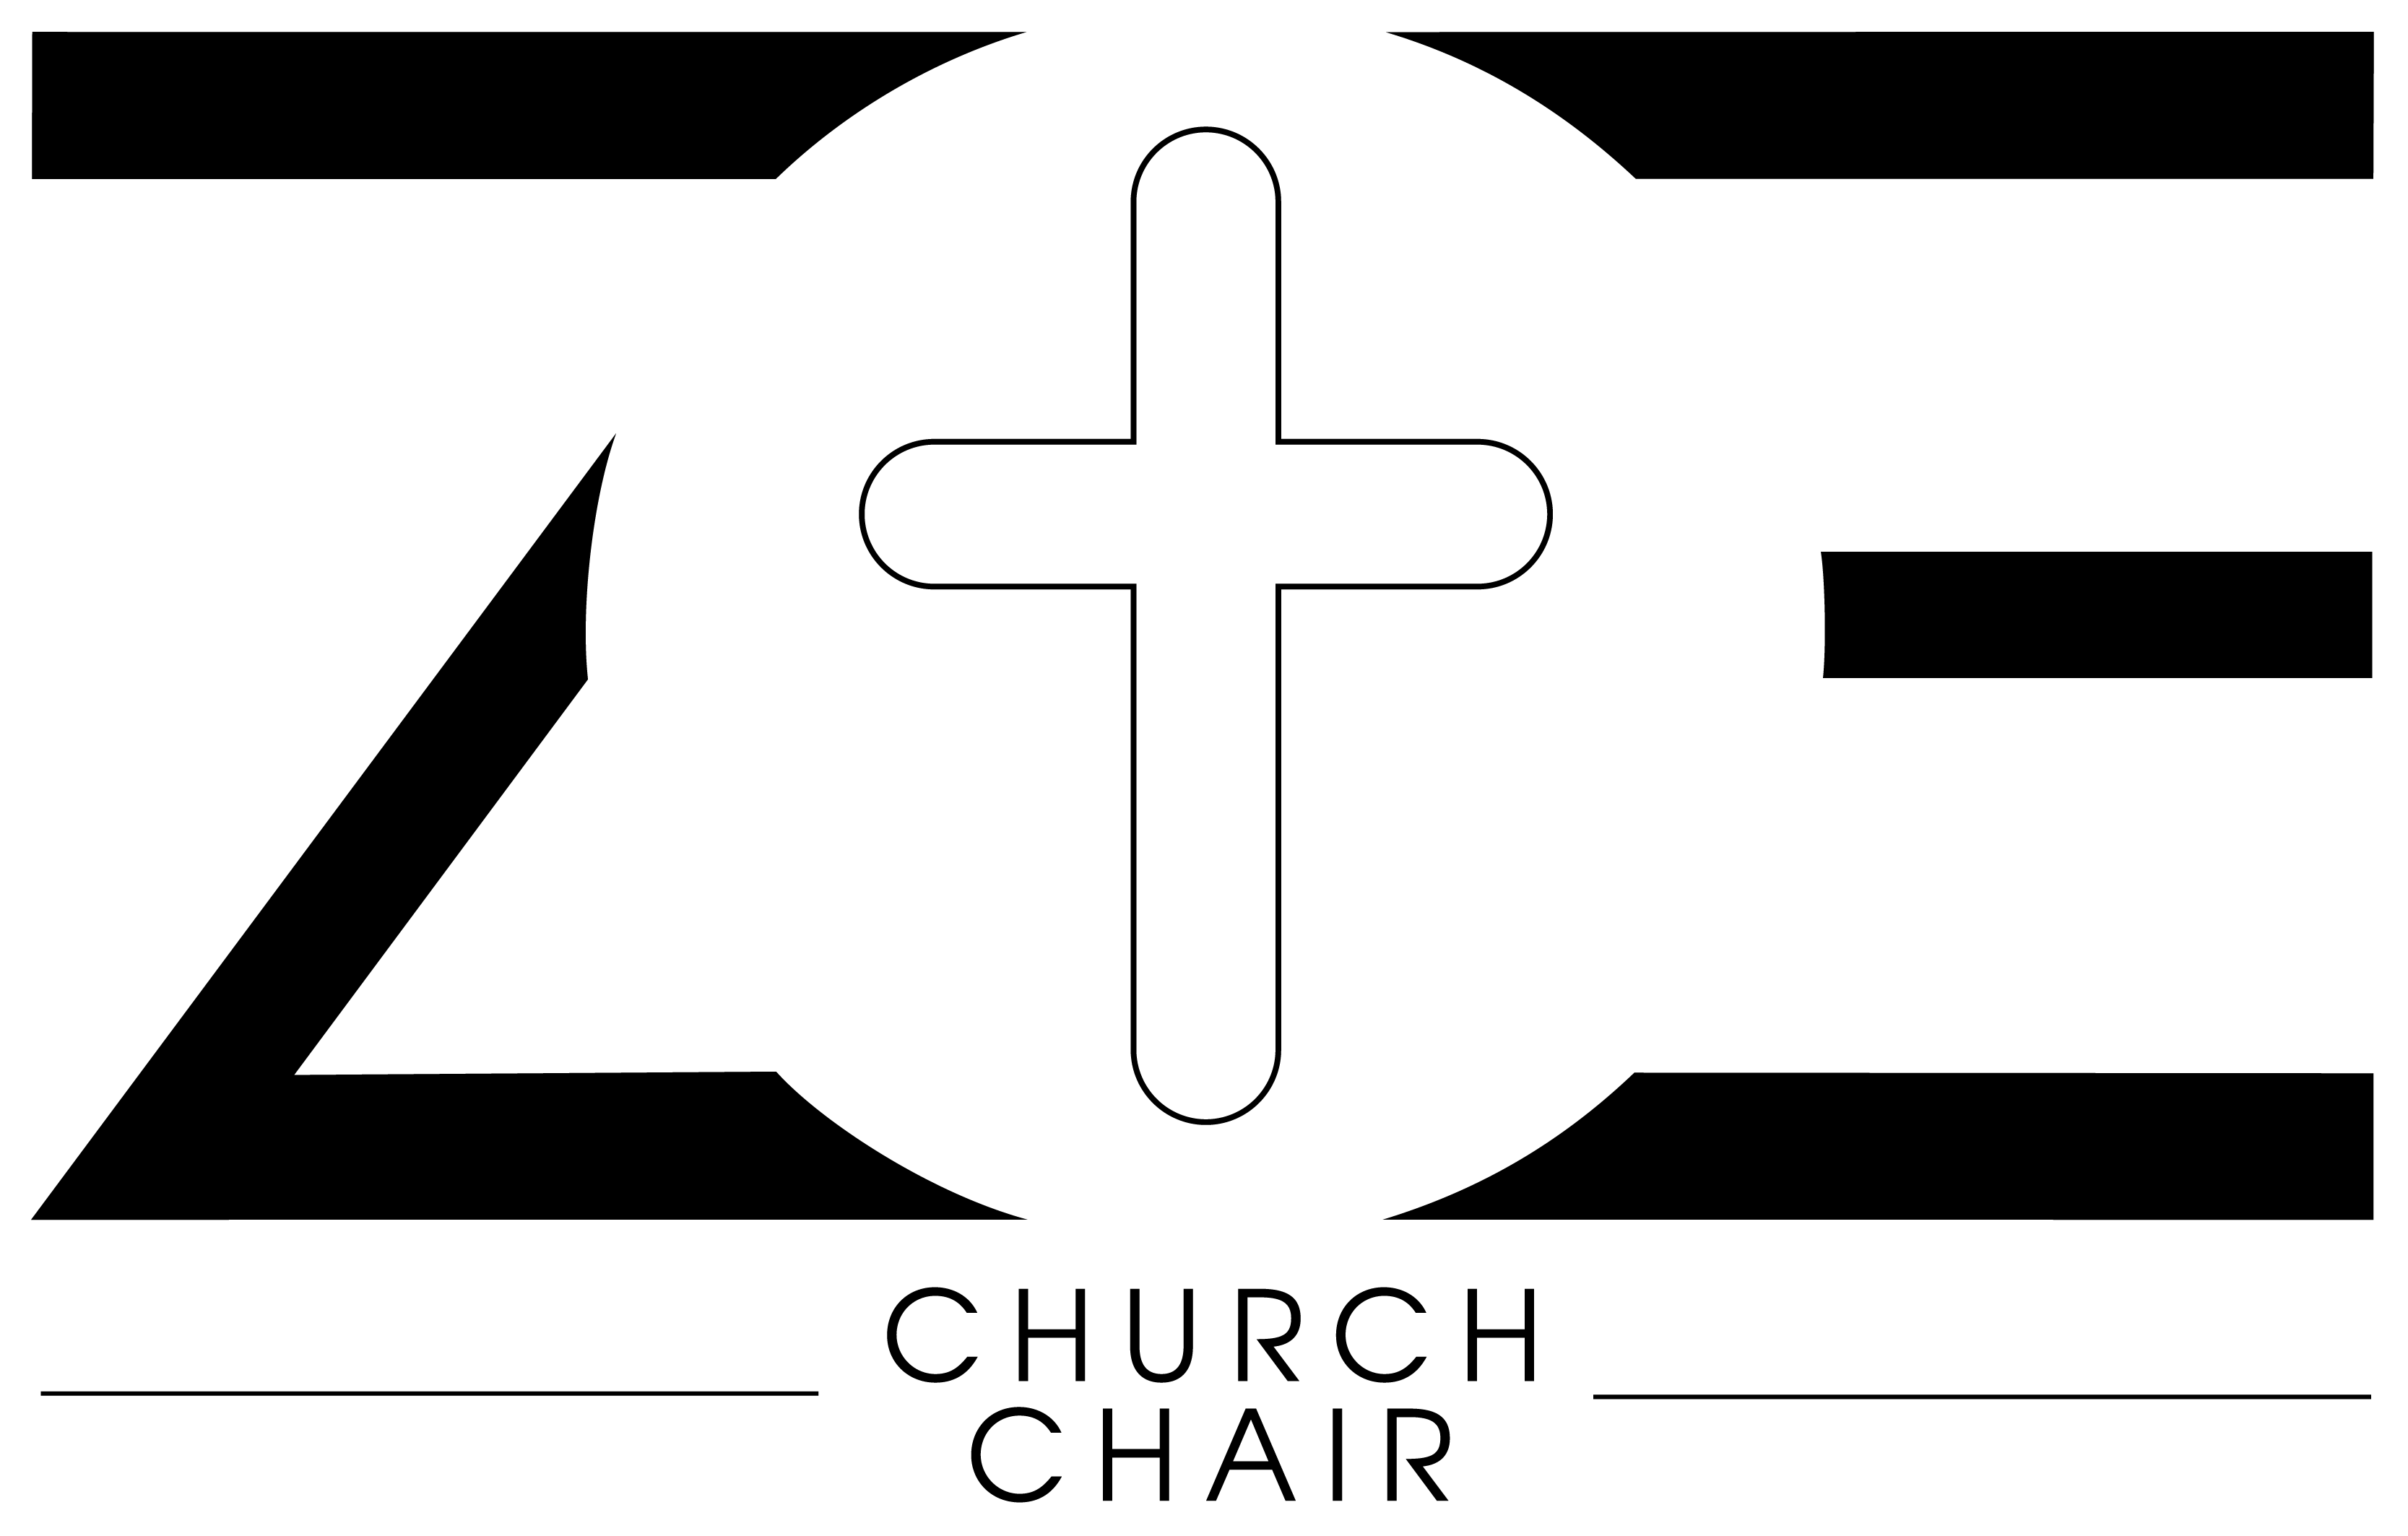 Logo ZOE church chair in black color on transparent back.